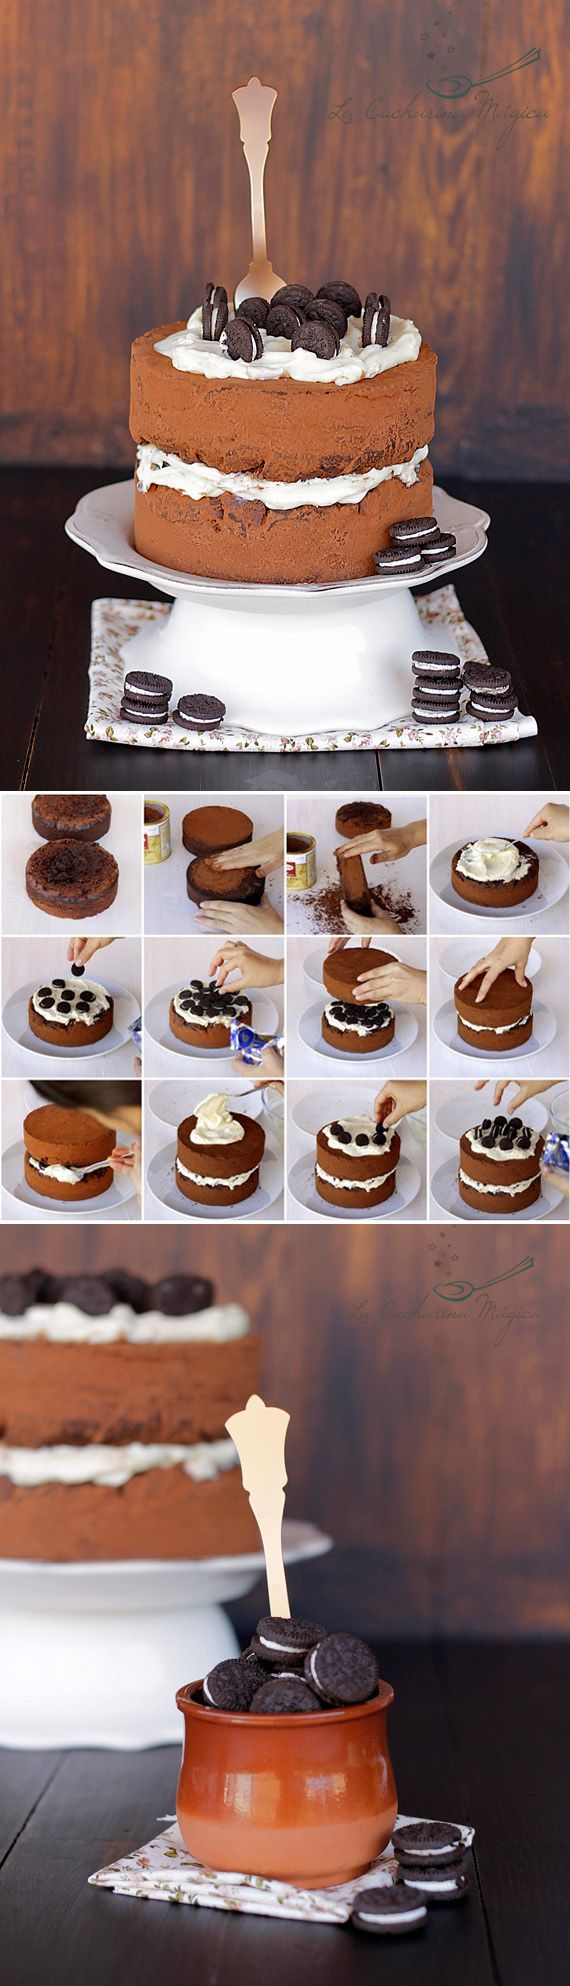 24 best Recetas en papel images on Pinterest | Recipies, Sticker and ...